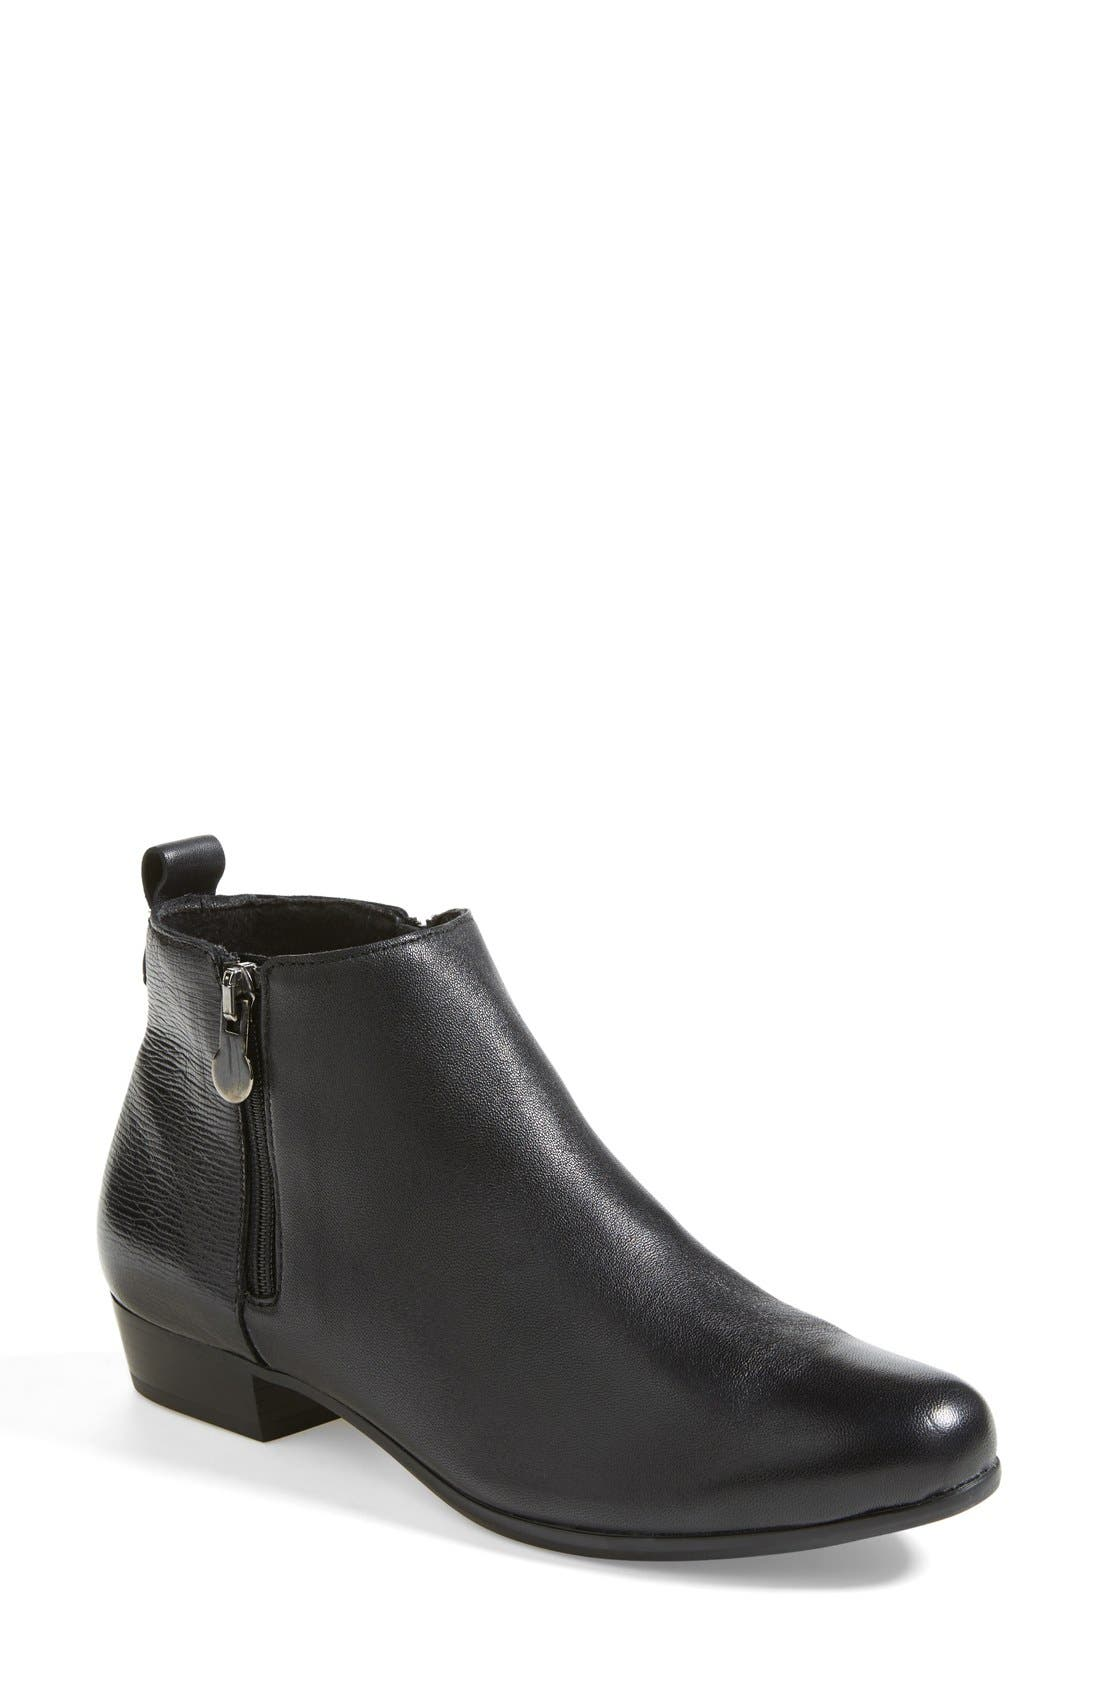 'Lexi' Boot,                         Main,                         color, Black Leather